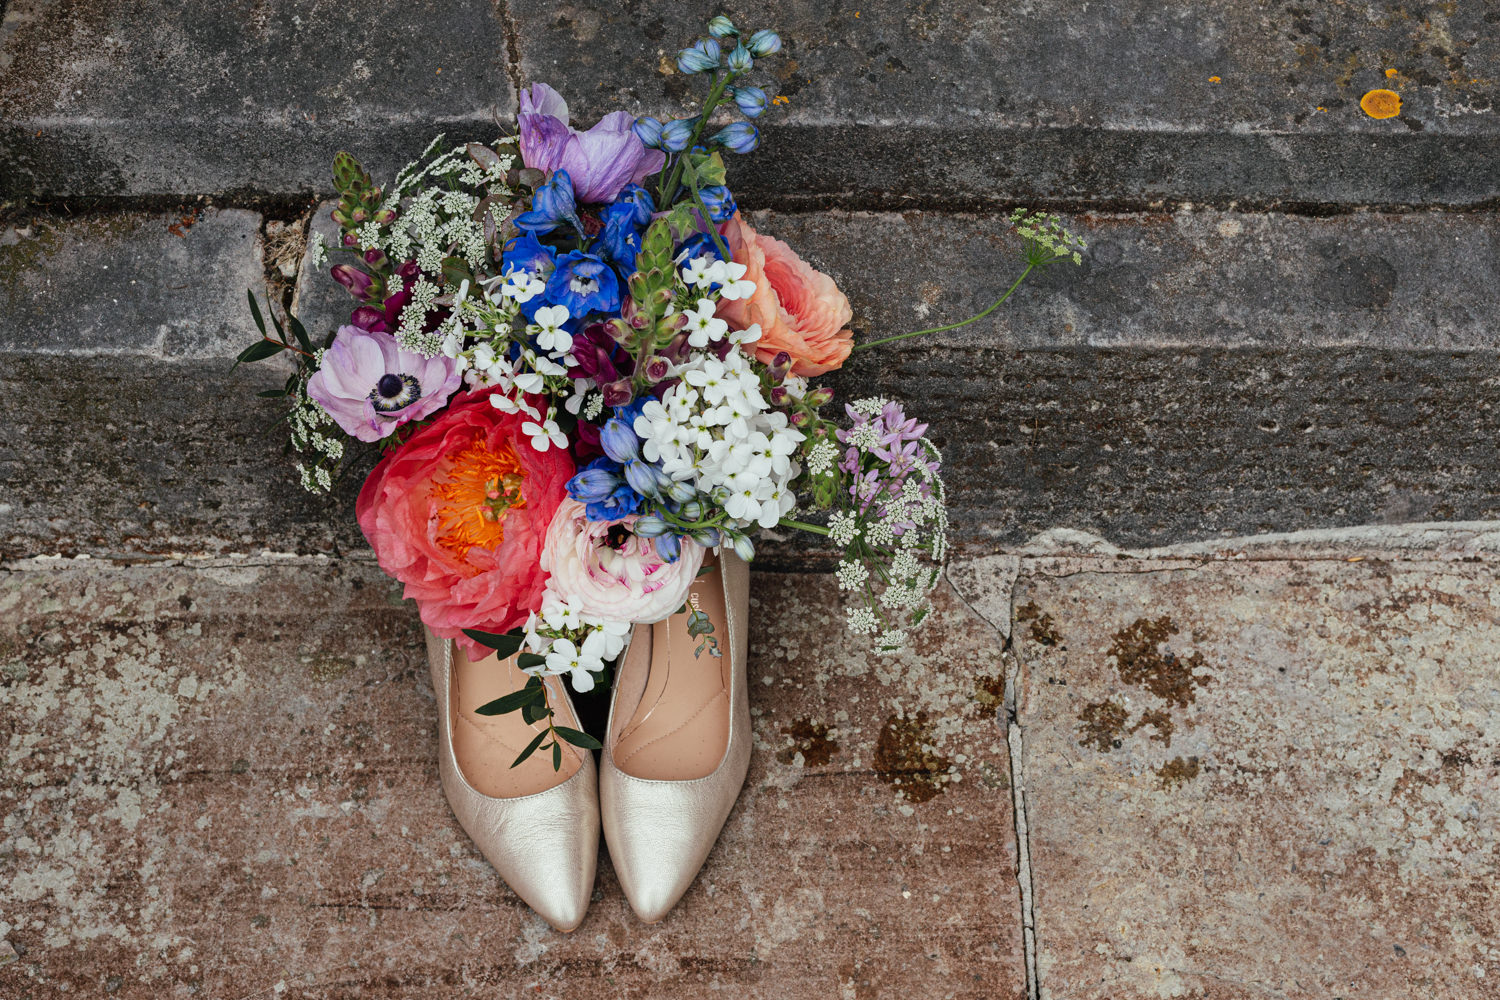 wedding detail, close-up, wedding shoes, wedding bouquet, colourful bouquet, rustic, wedding shoes and flowers, shabby chic, stonework, wedding at sharpham, sharpham house, sharpham gardens, wedding photography, devon wedding, wedding in devon, wedding at sharpham house